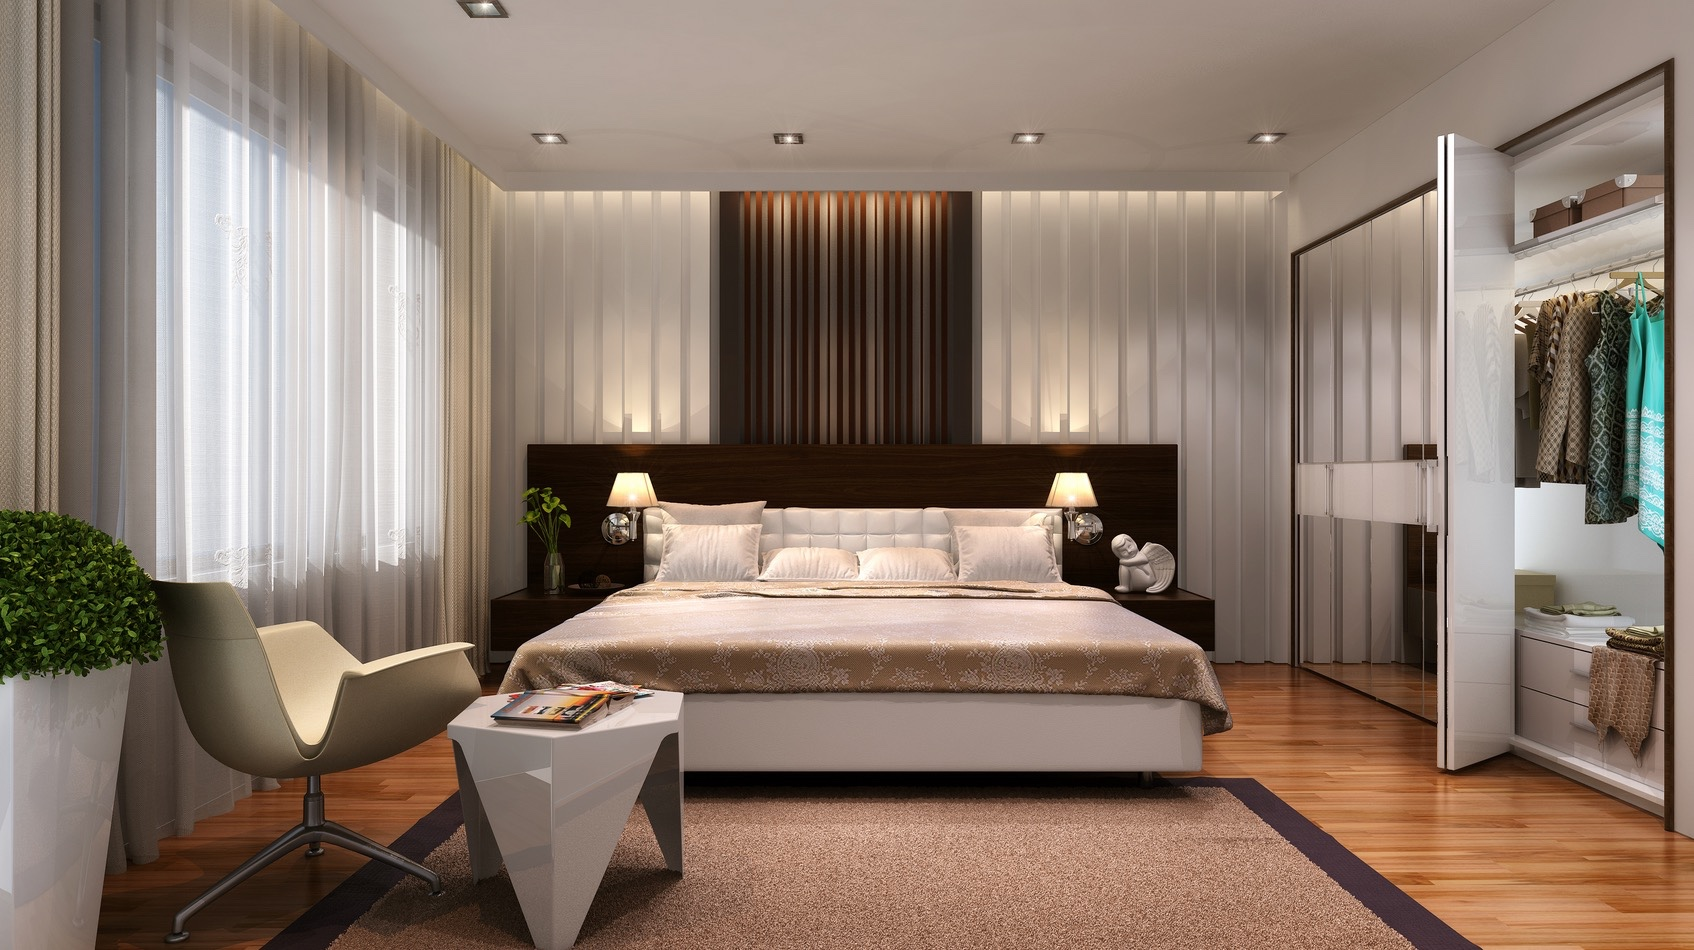 21 cool bedrooms for clean and simple design inspiration for Bedroom designs unique